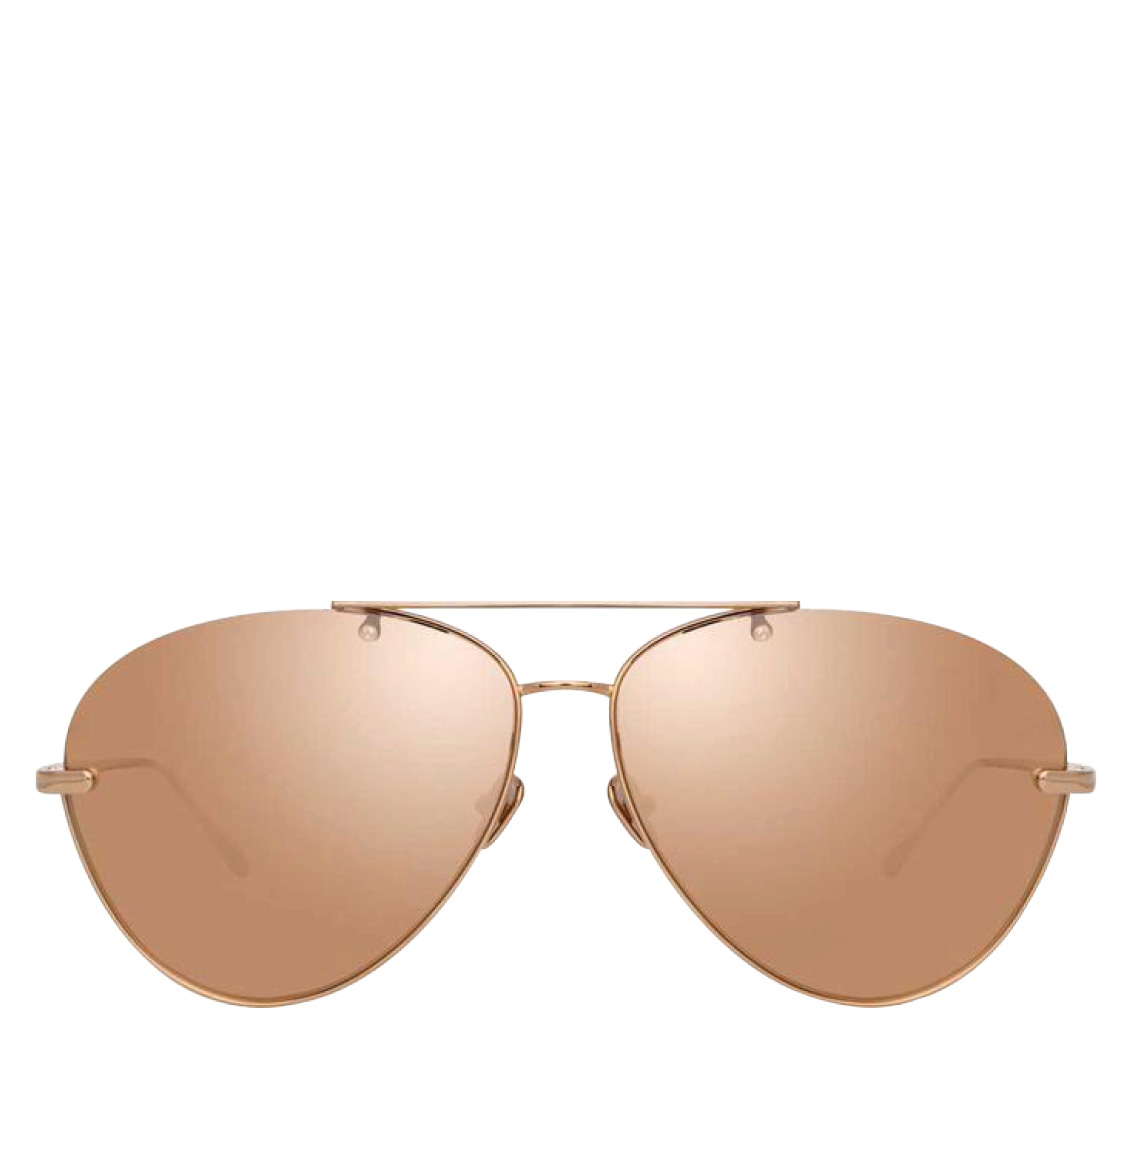 Linda Farrow 859 C3 Aviator Rose Gold-Plated Titanium Frames 62 Γυαλιά Ηλίου